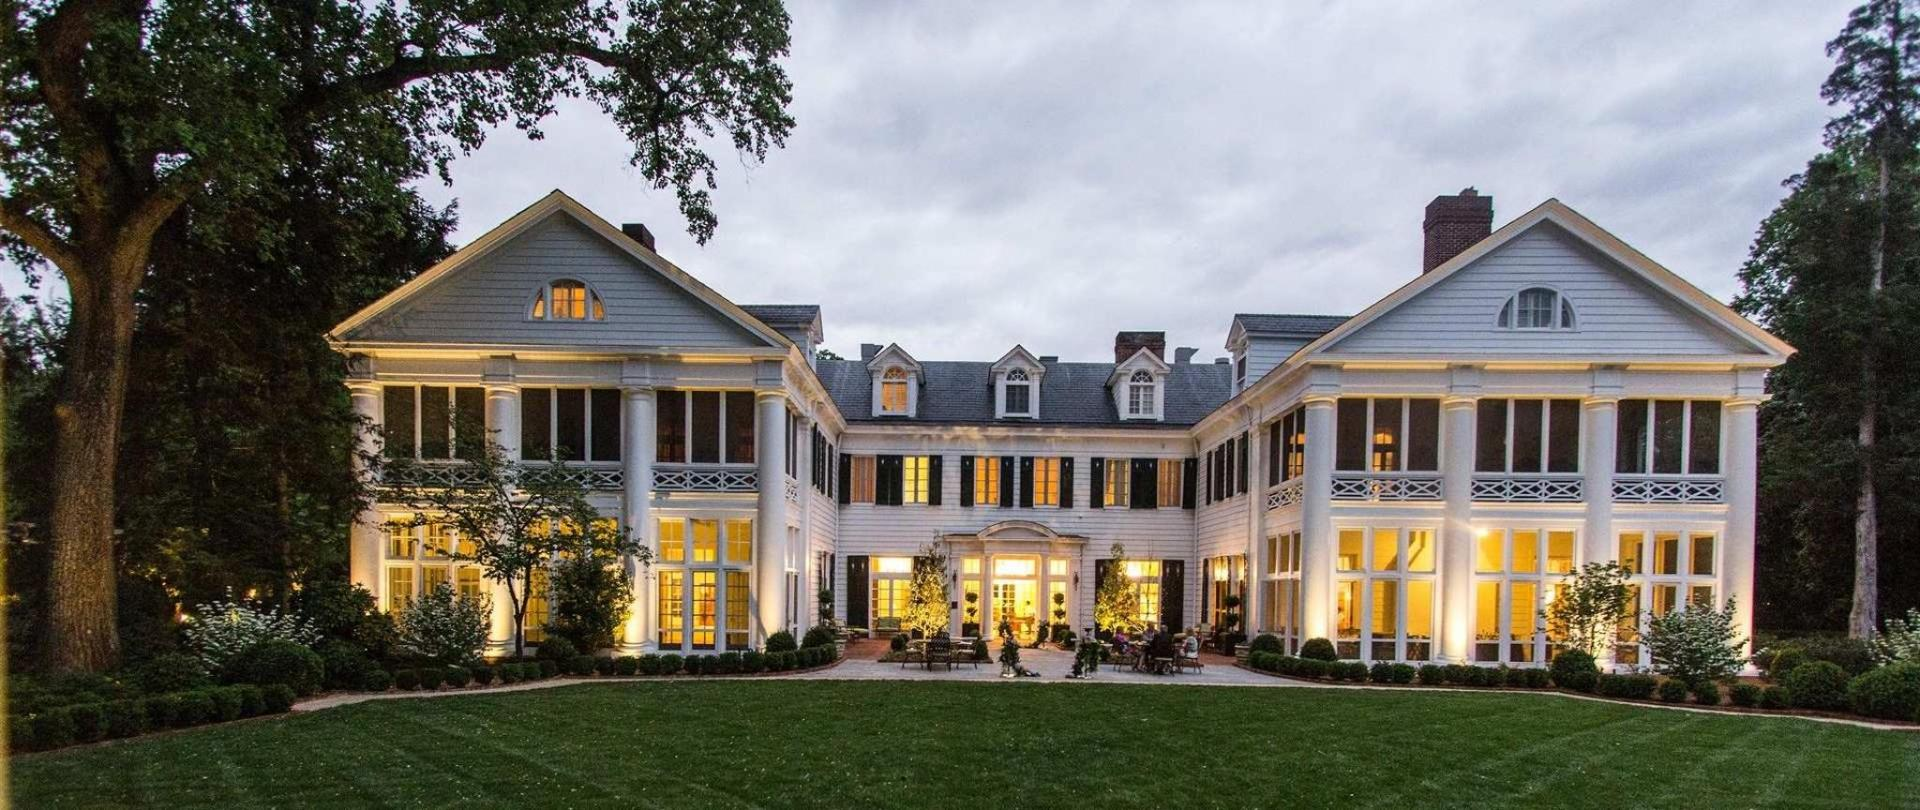 The Duke Mansion Bed And Breakfast In Charlotte Nc The